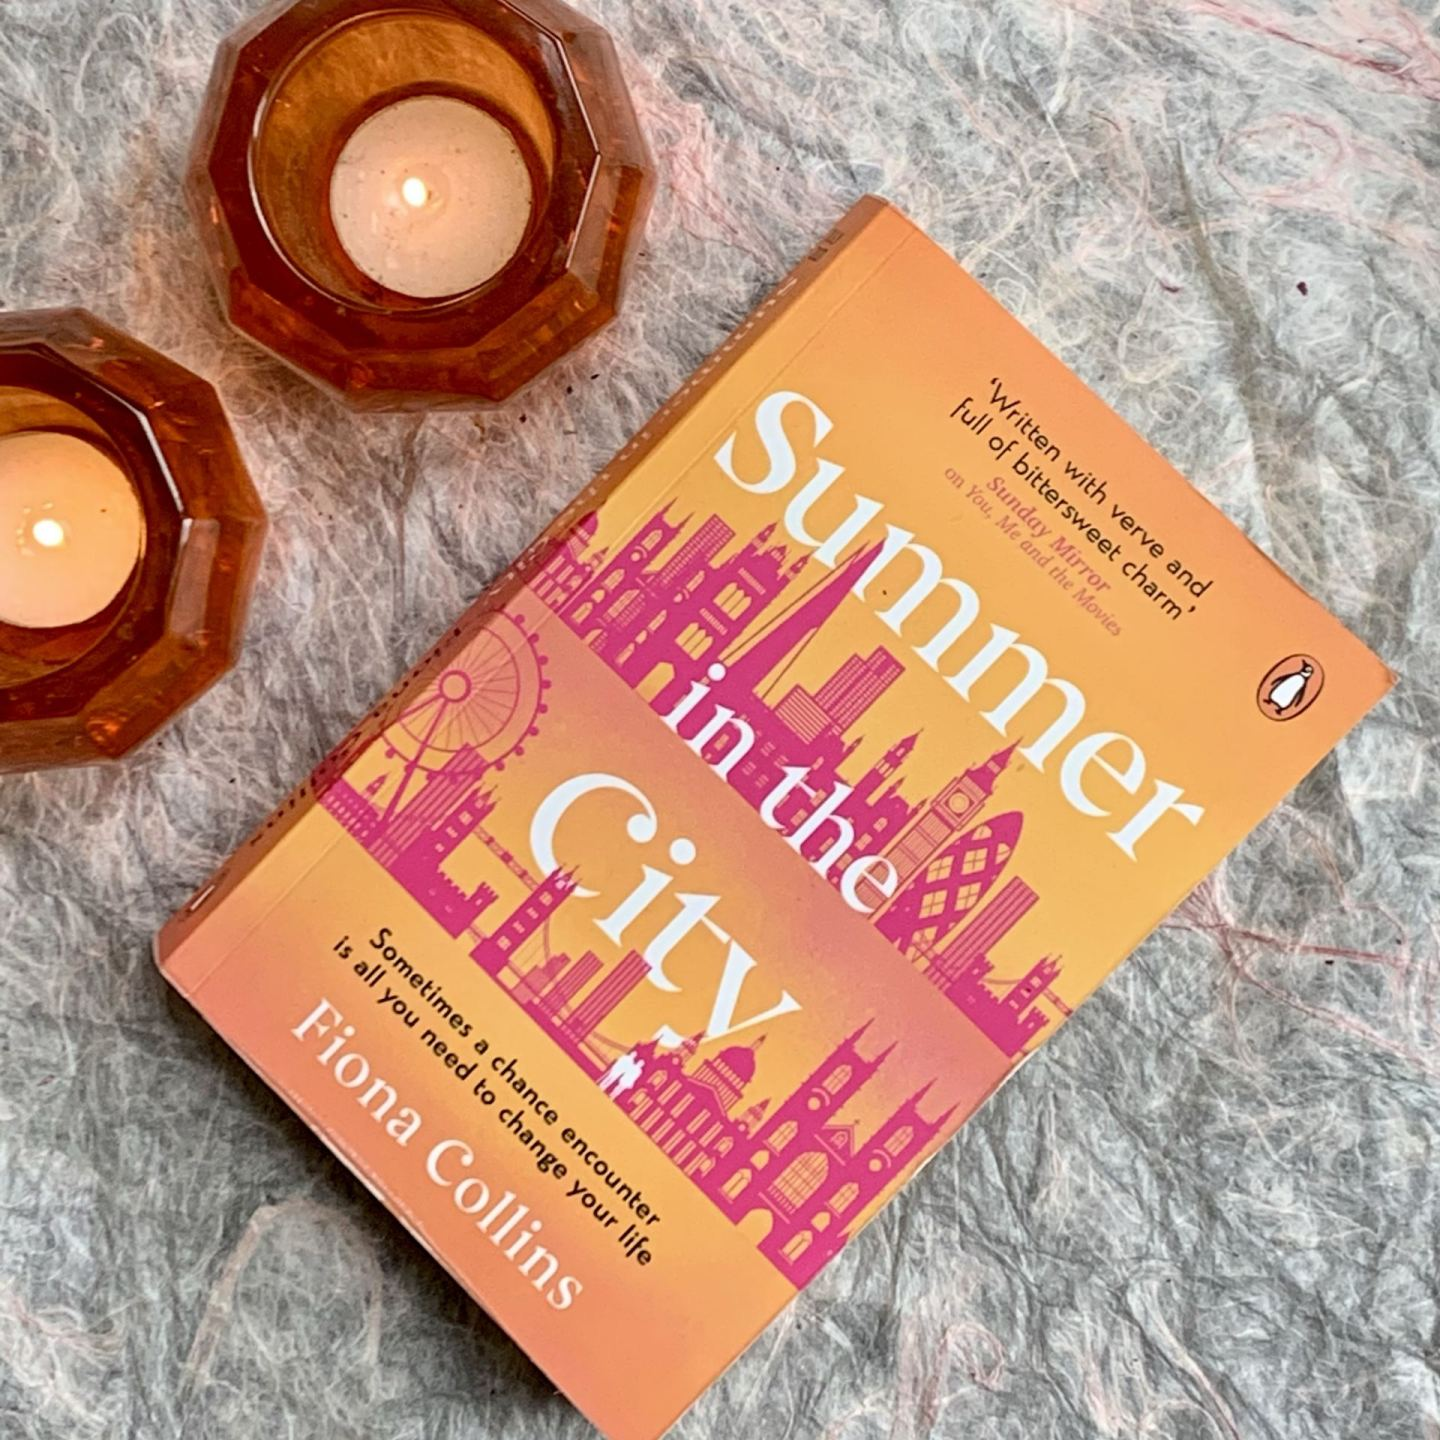 Summer in the City; a story to fall in love with